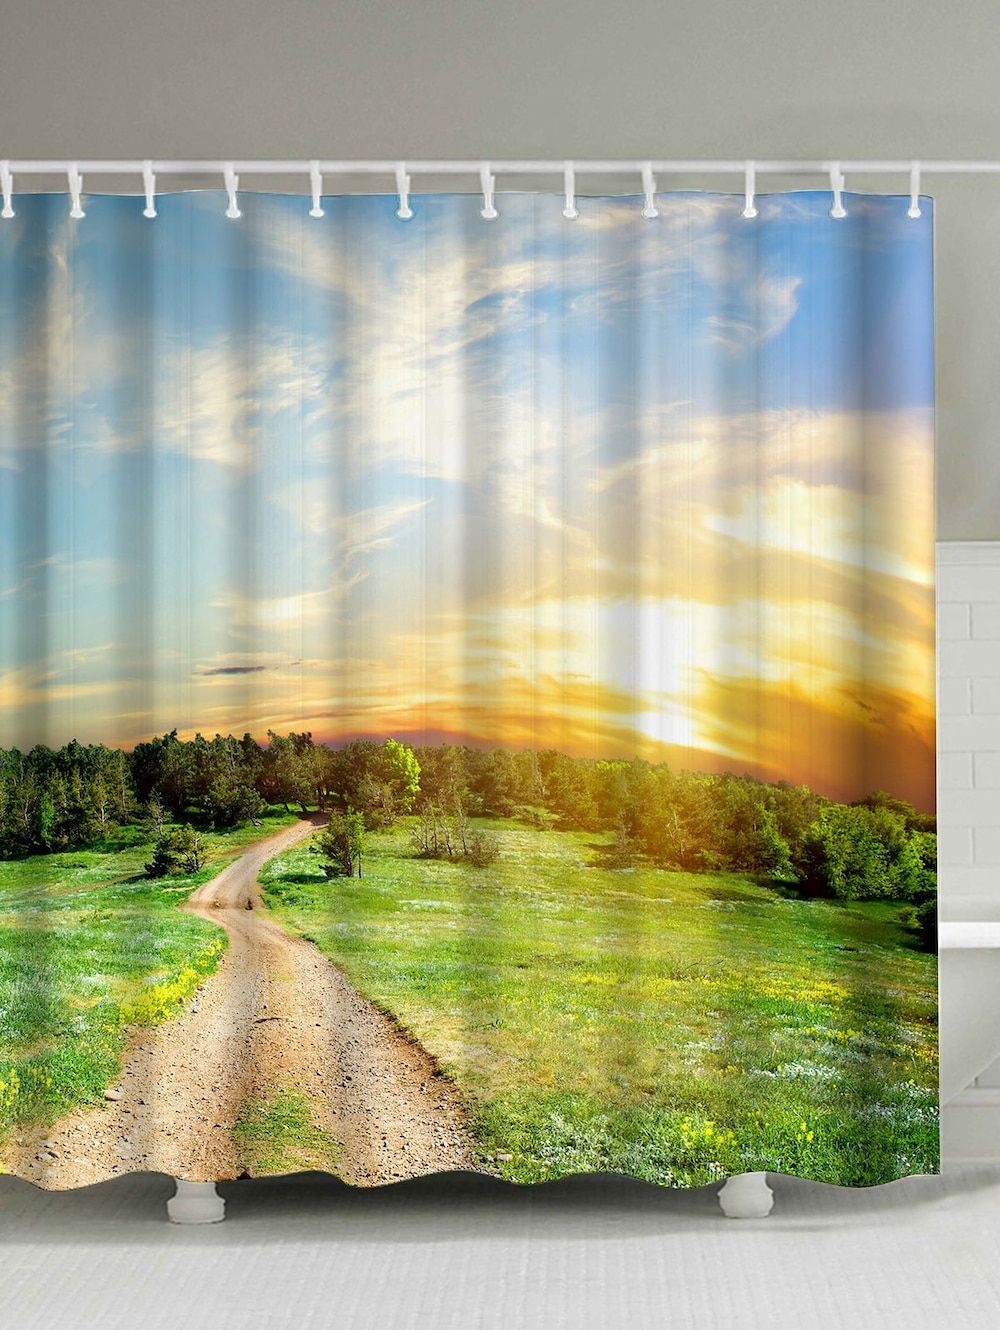 Nature Scenery Print Waterproof Fabric Shower Curtain Fabric